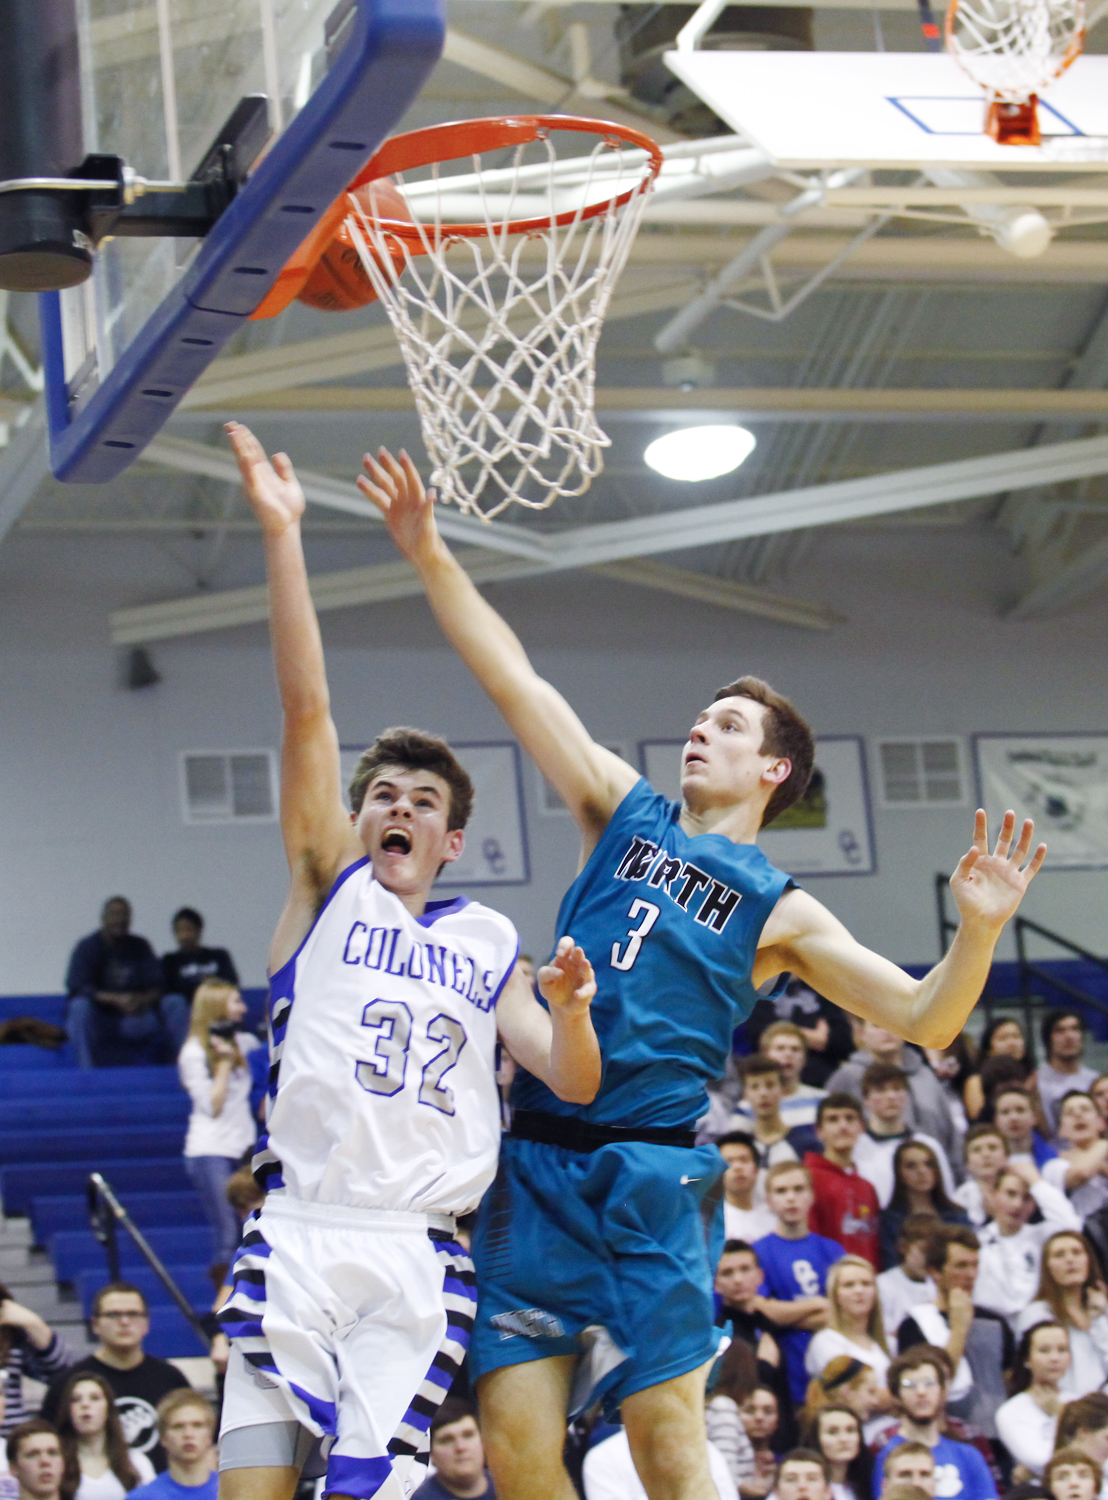 Oldham County sophomore Griffin McLarty goes for a layup against North guard Trevor Burton during their January 30th 62-48 win in Buckner.